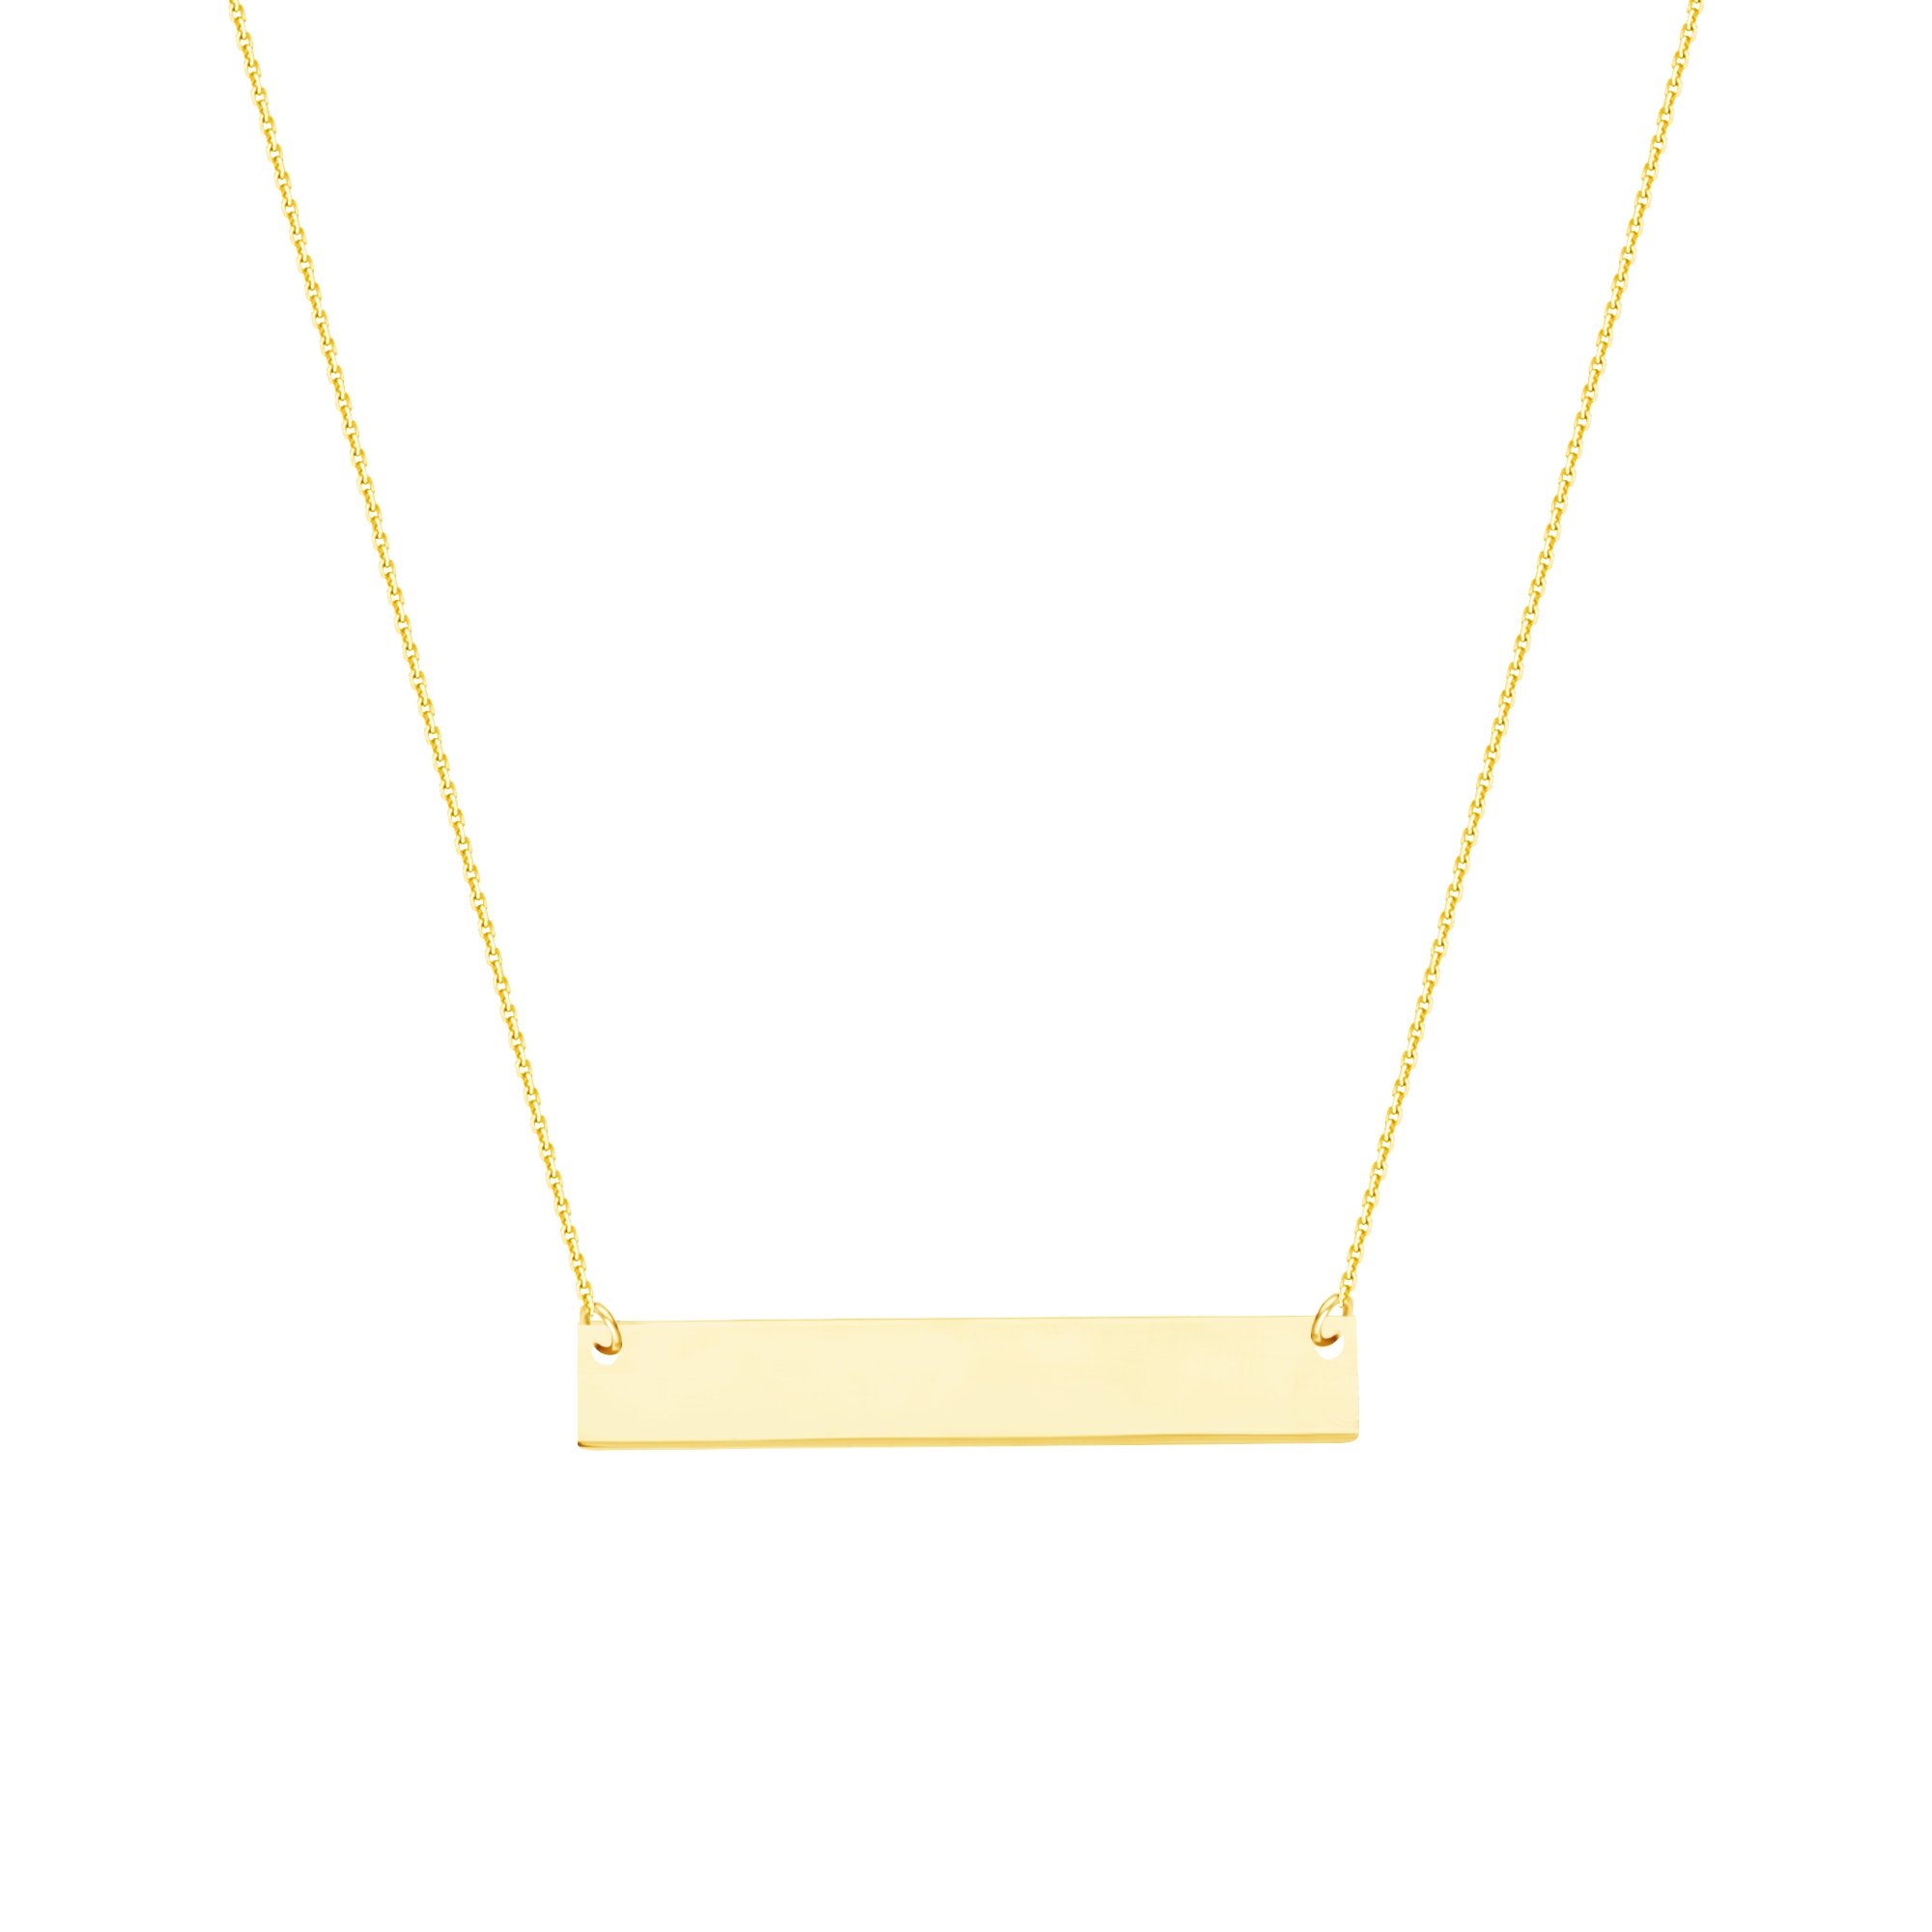 Name Plate Necklace, 14Kt Gold Name Plate Necklace 18